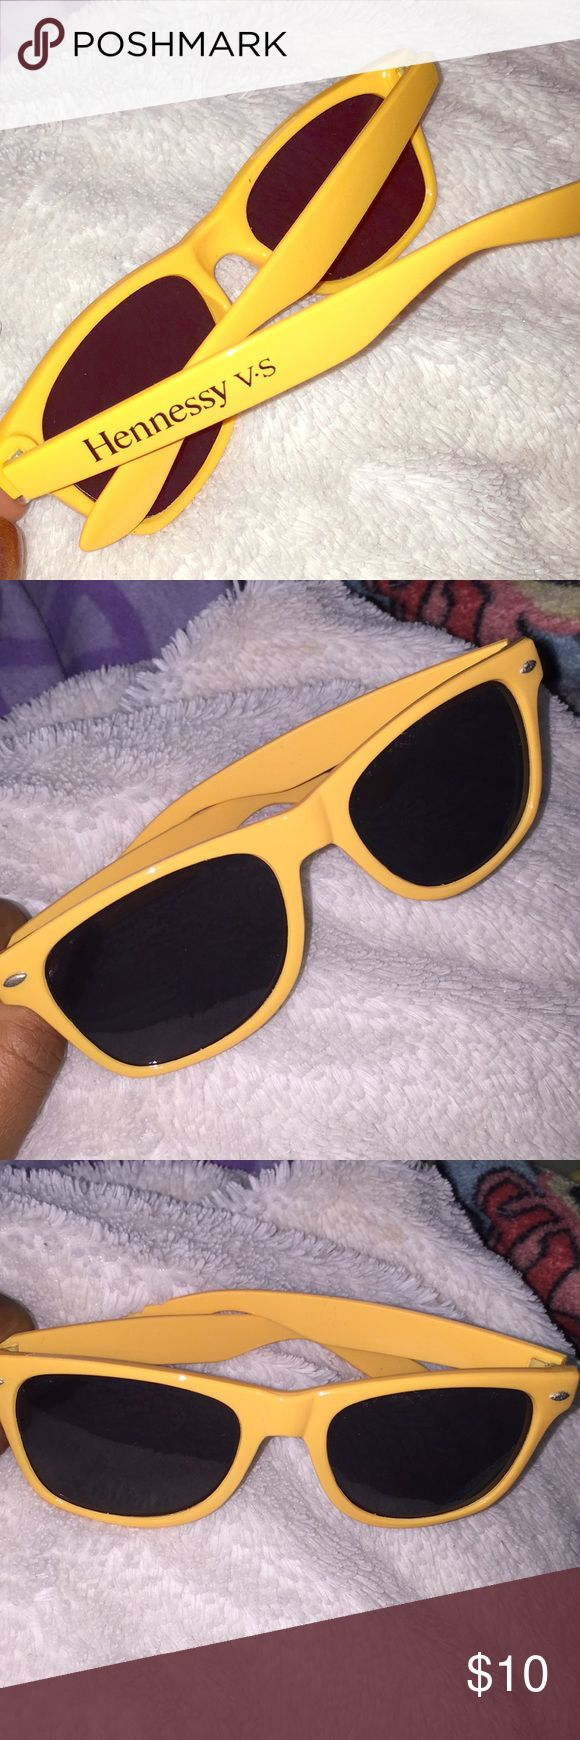 Hennessy Sunglasses Perfect condition. Never worn. Accessories Sunglasses